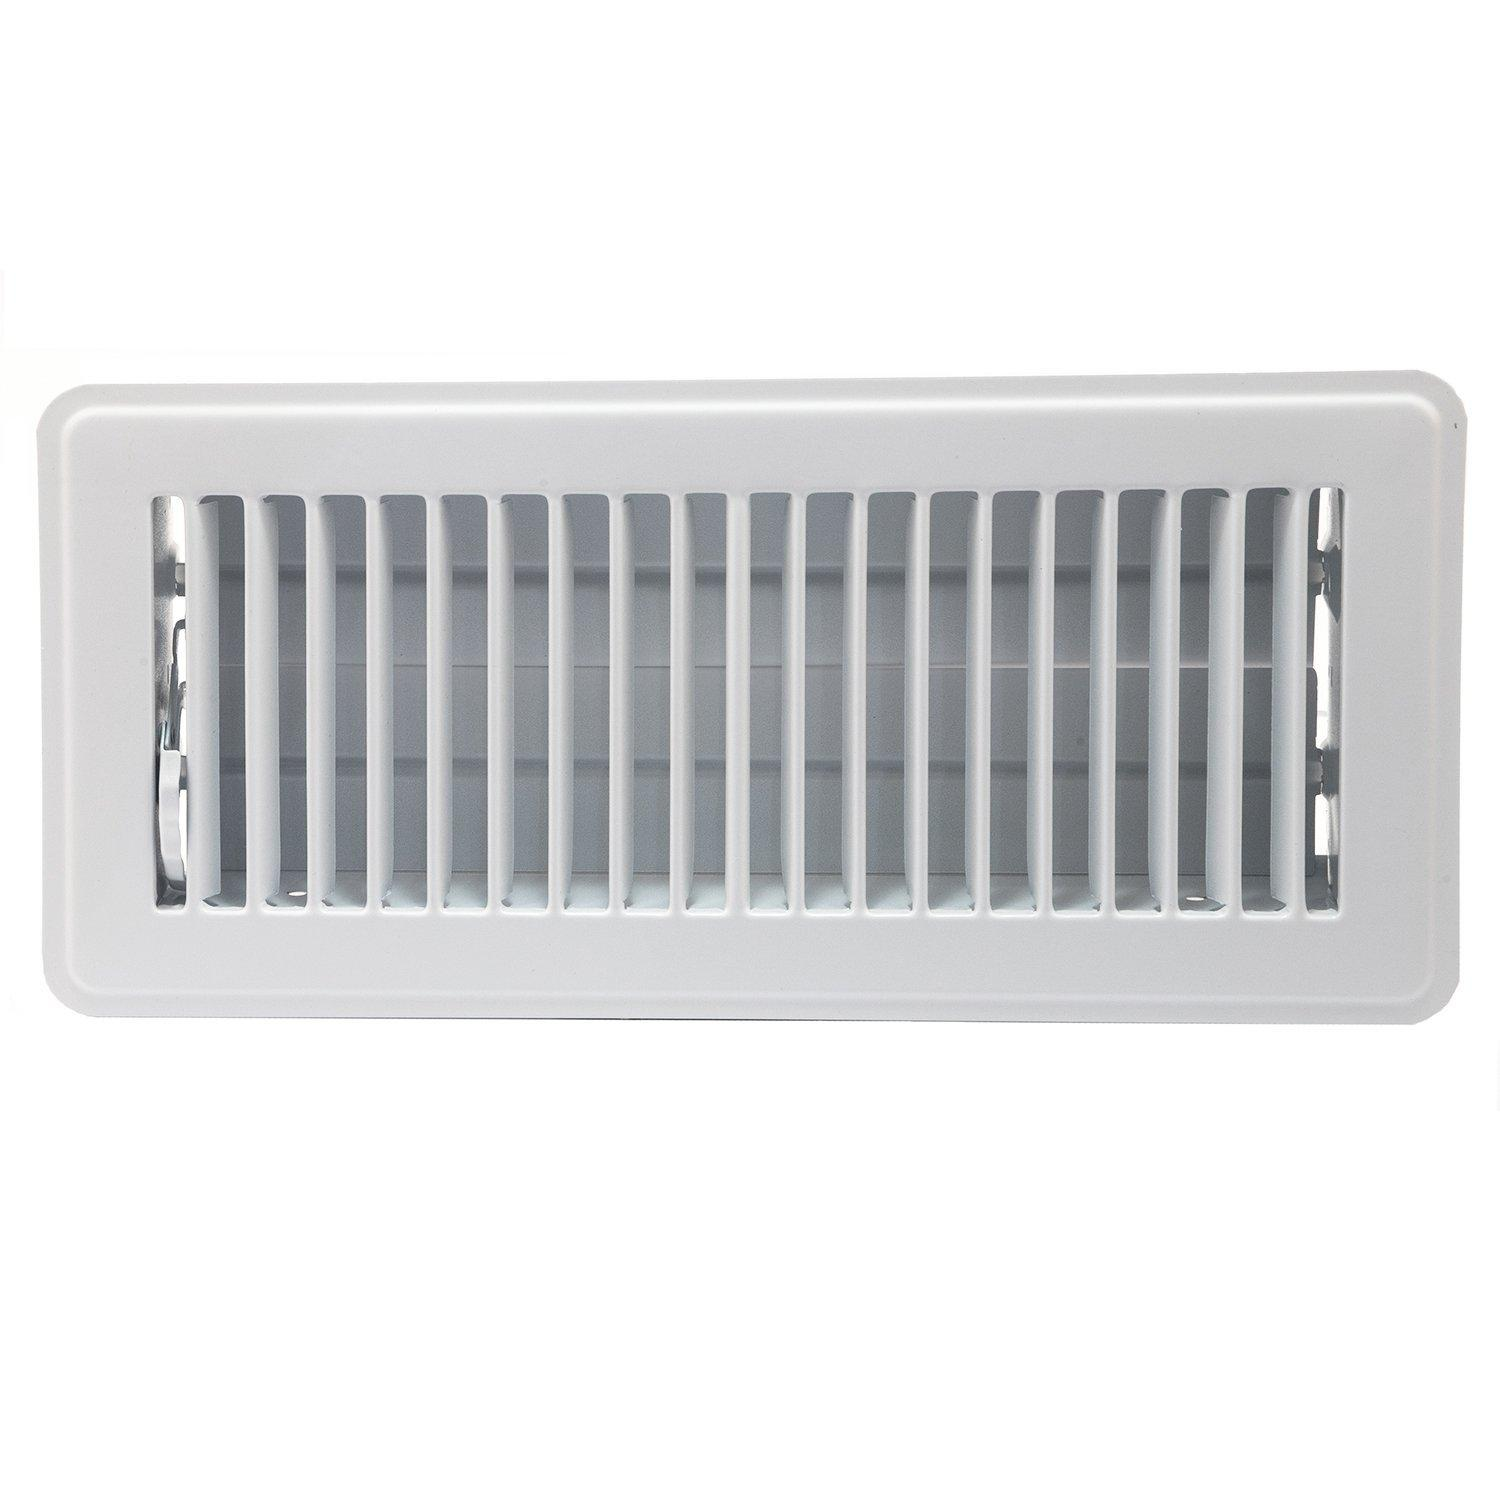 Accord abfrwh floor register with louvered design